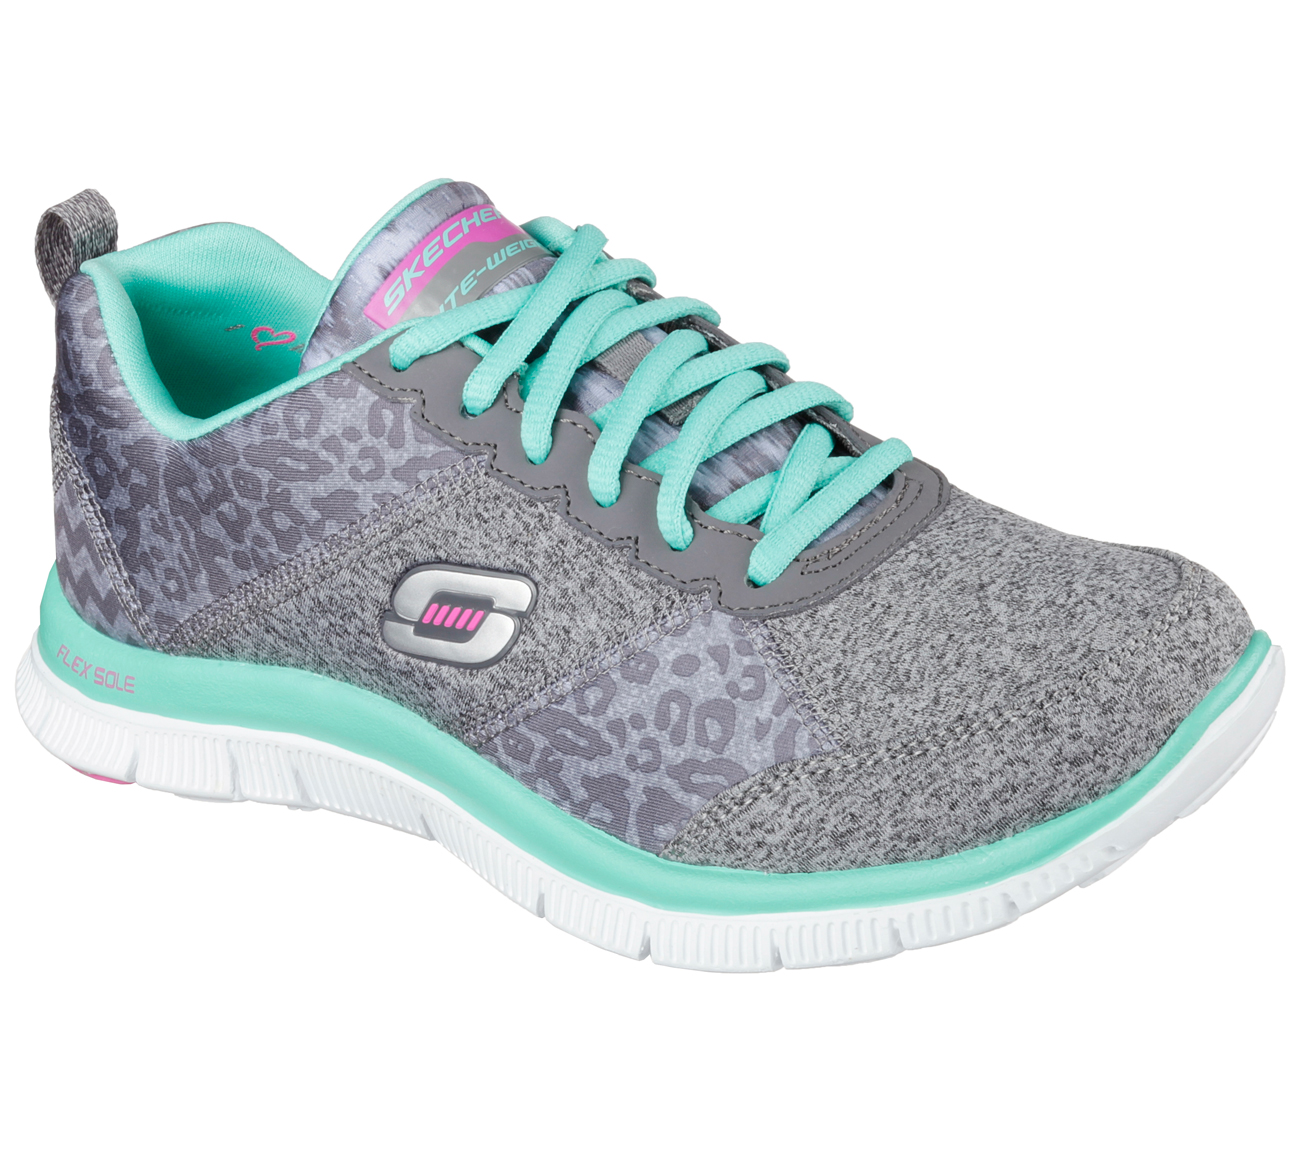 appeal flex tribeca skechers animal shoes knit urban heathered athletic